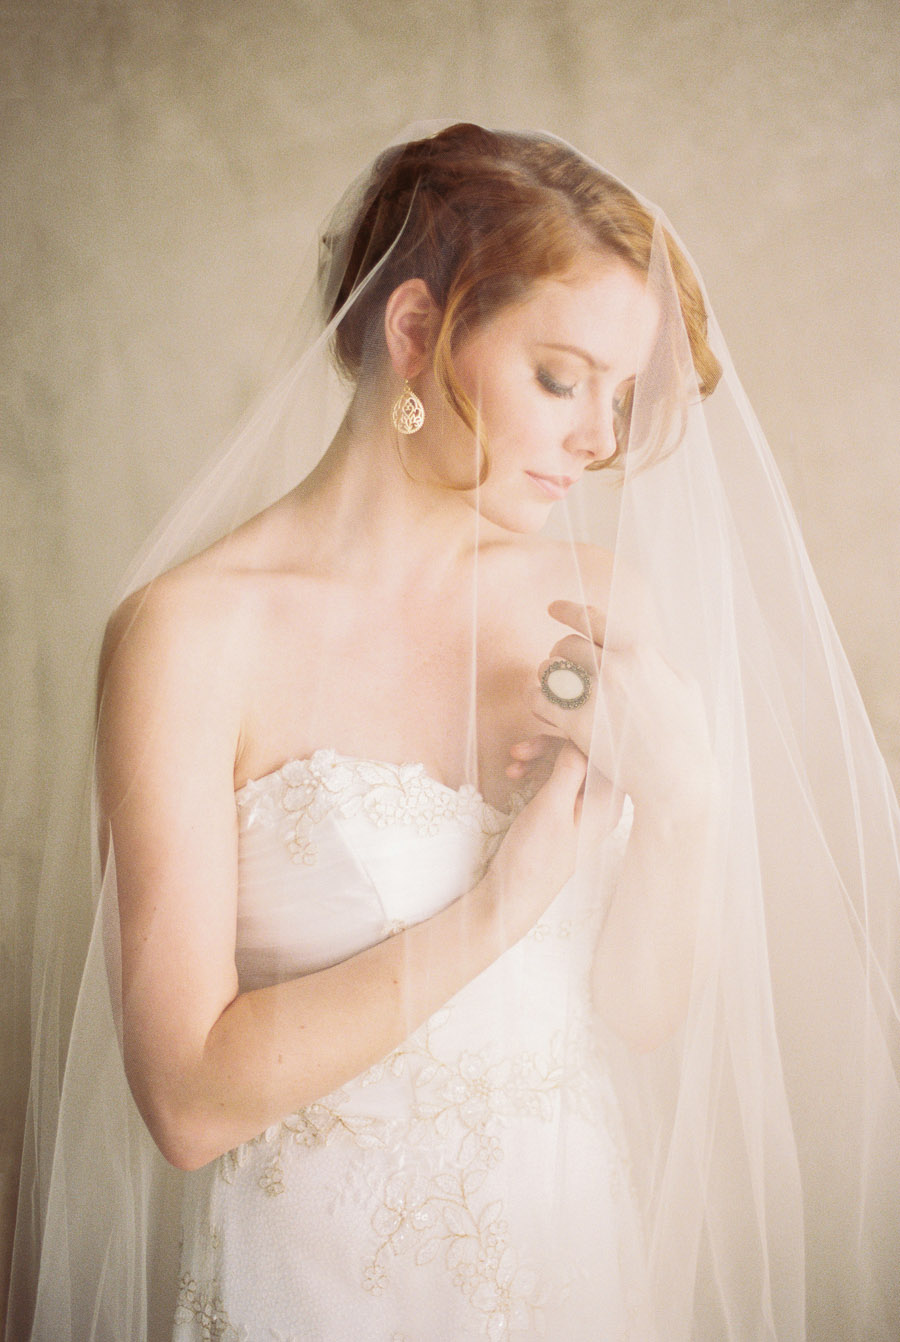 Fingertip drop veil with lace wedding dress | by Lara Lam Photography